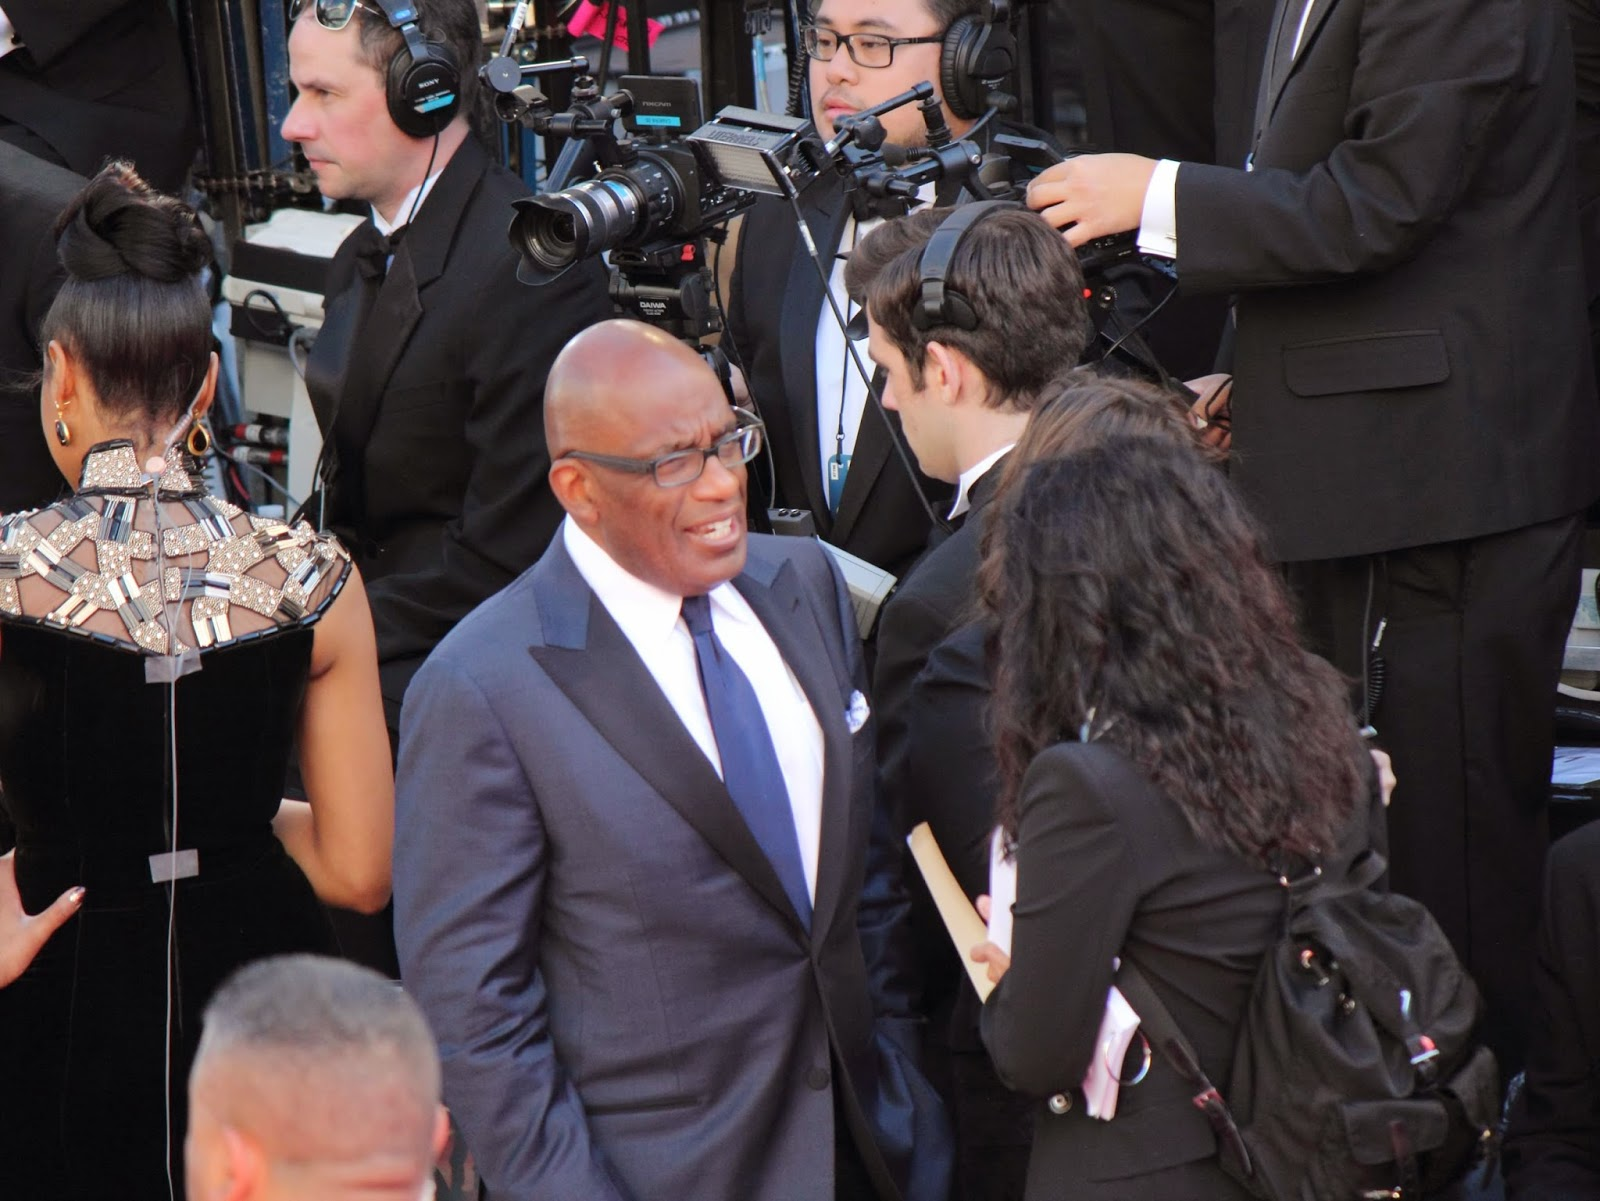 Al Roker on the red carpet for the 2013 Oscars